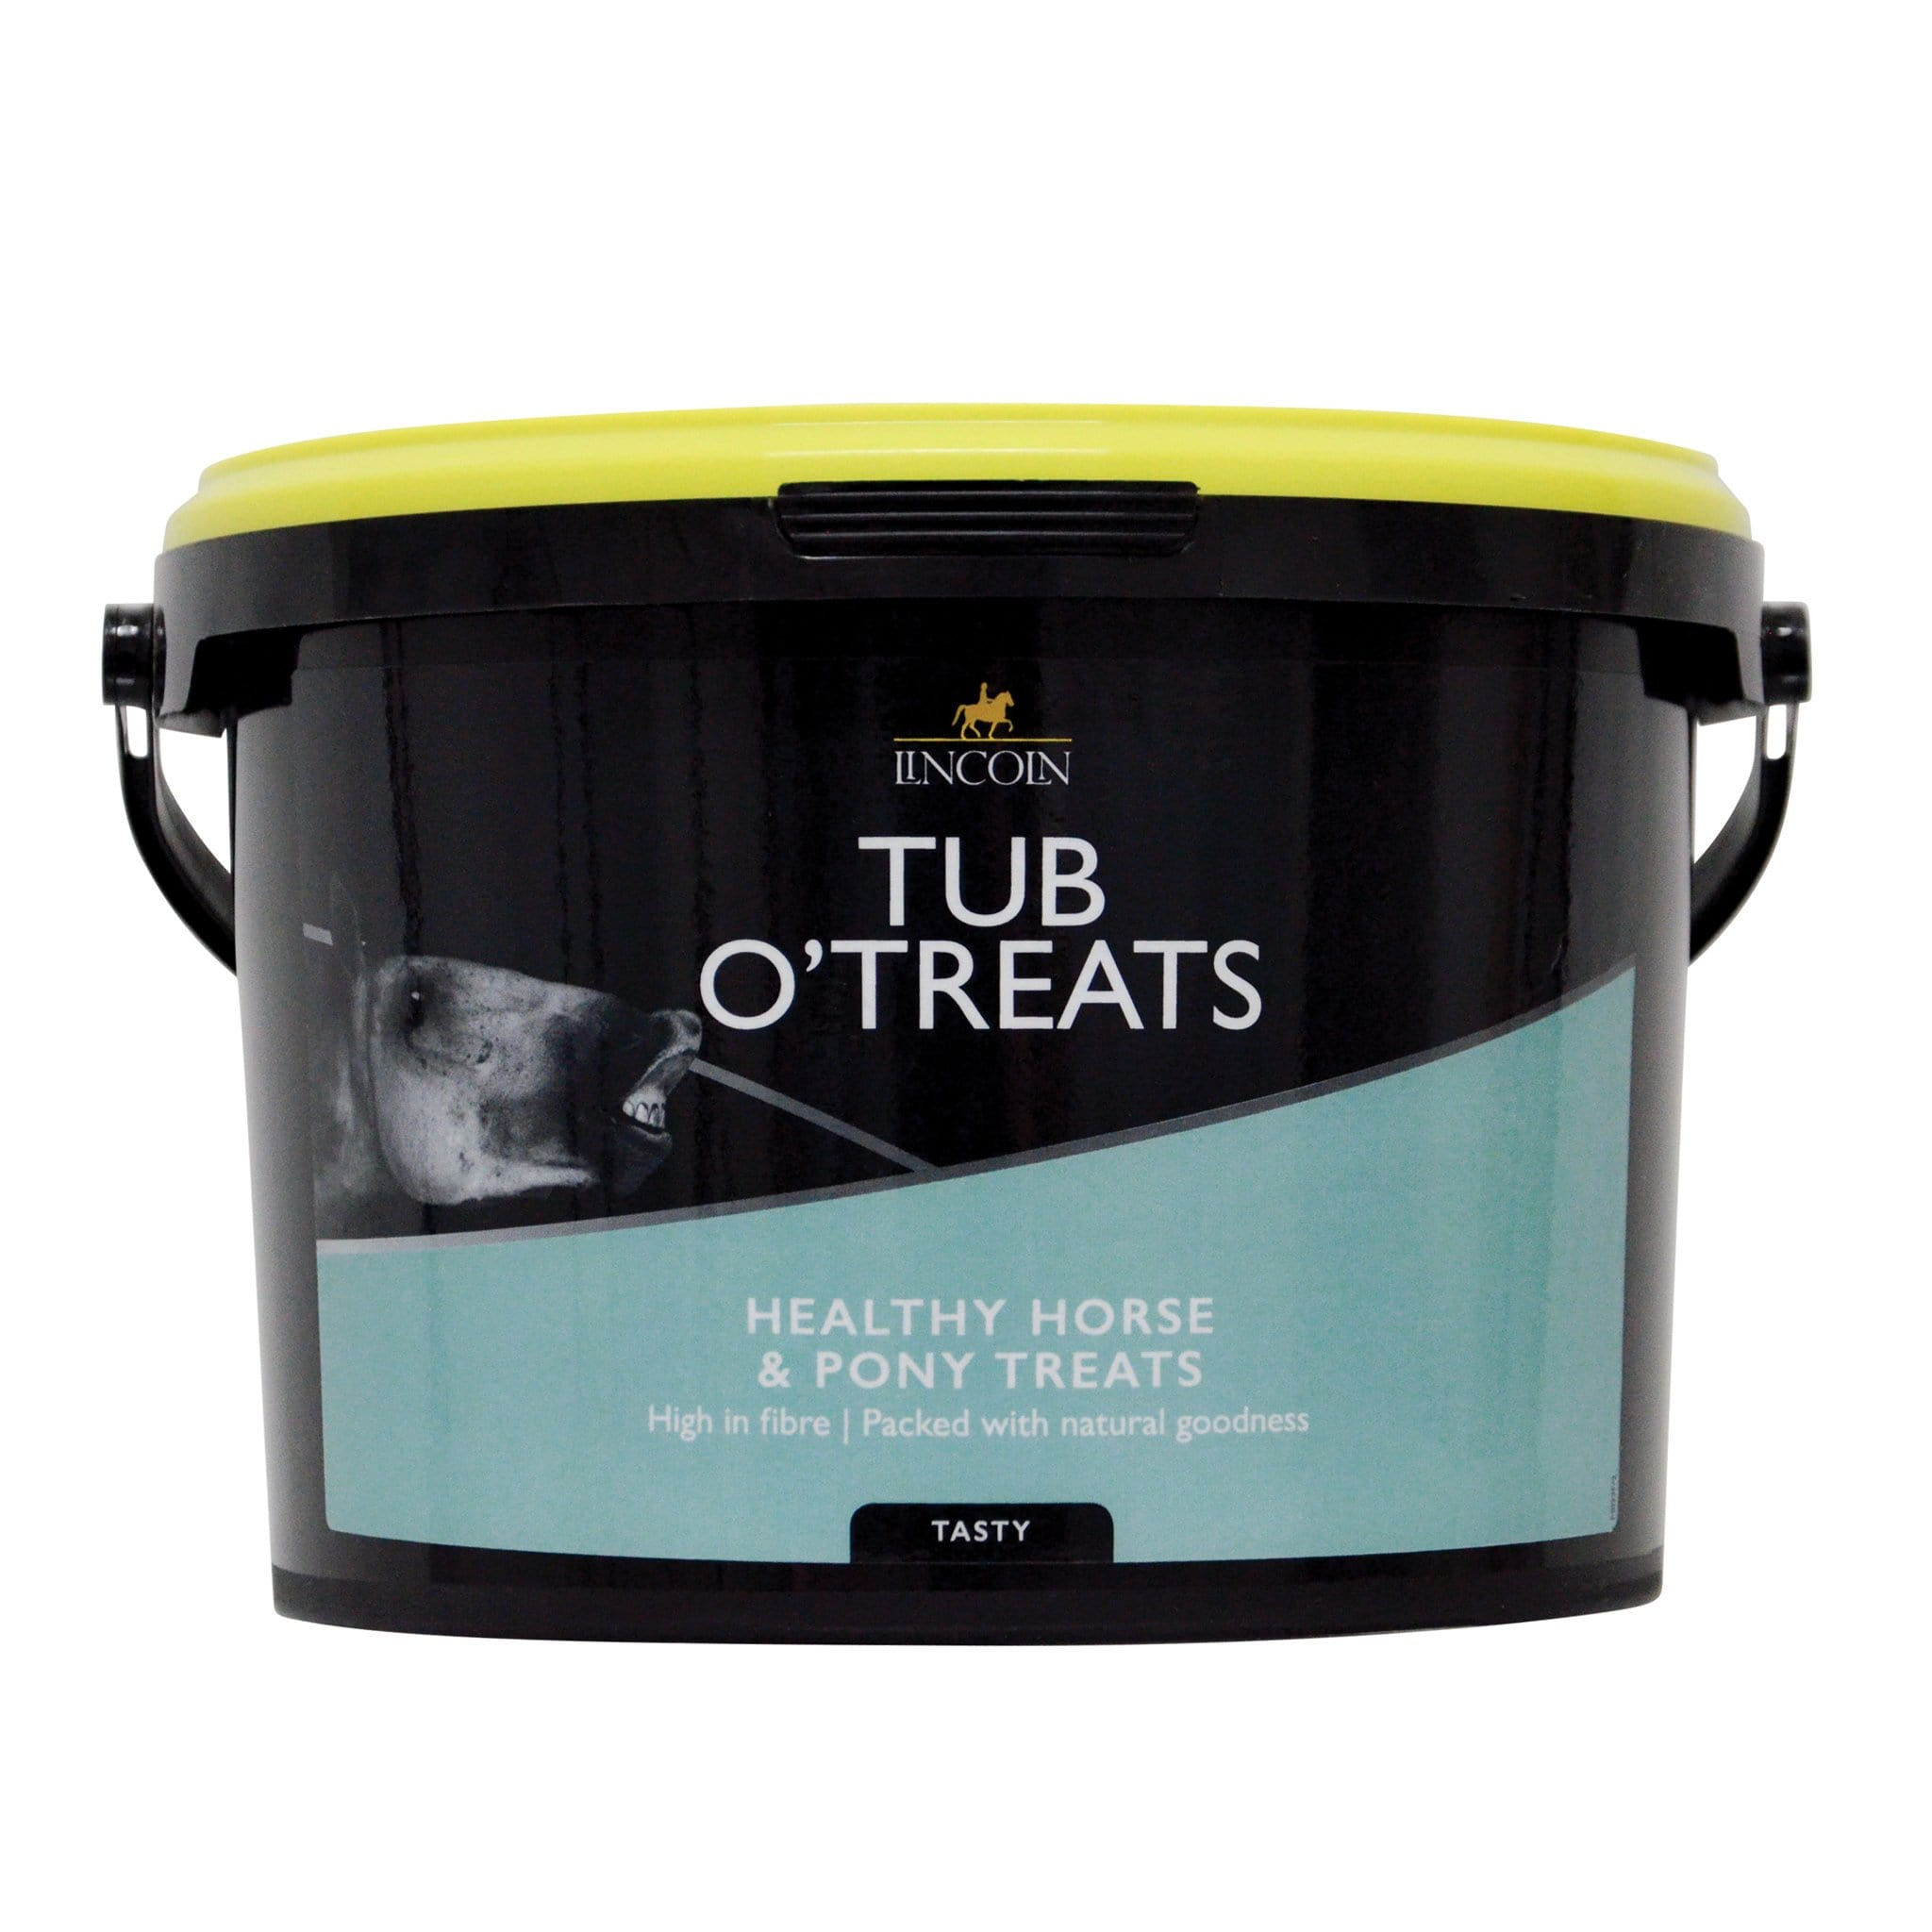 Lincoln Tub O' Treats 2.5kg 4121